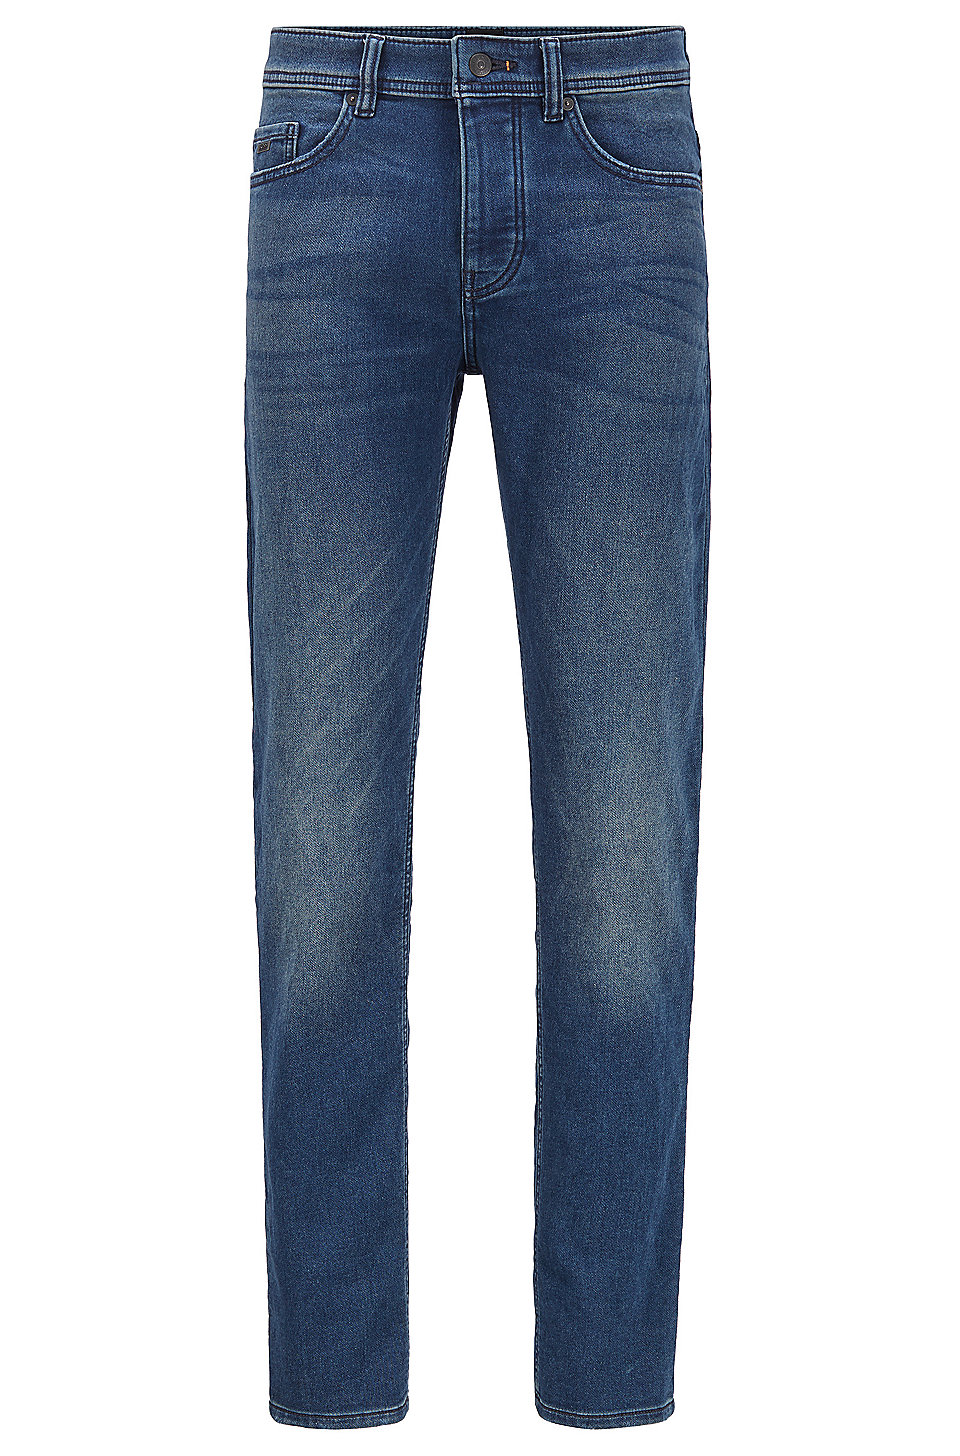 Boss Tapered Fit Jeans In Vintage Look Knitted Denim Knit Denim Jeans Fit Denim Fashion